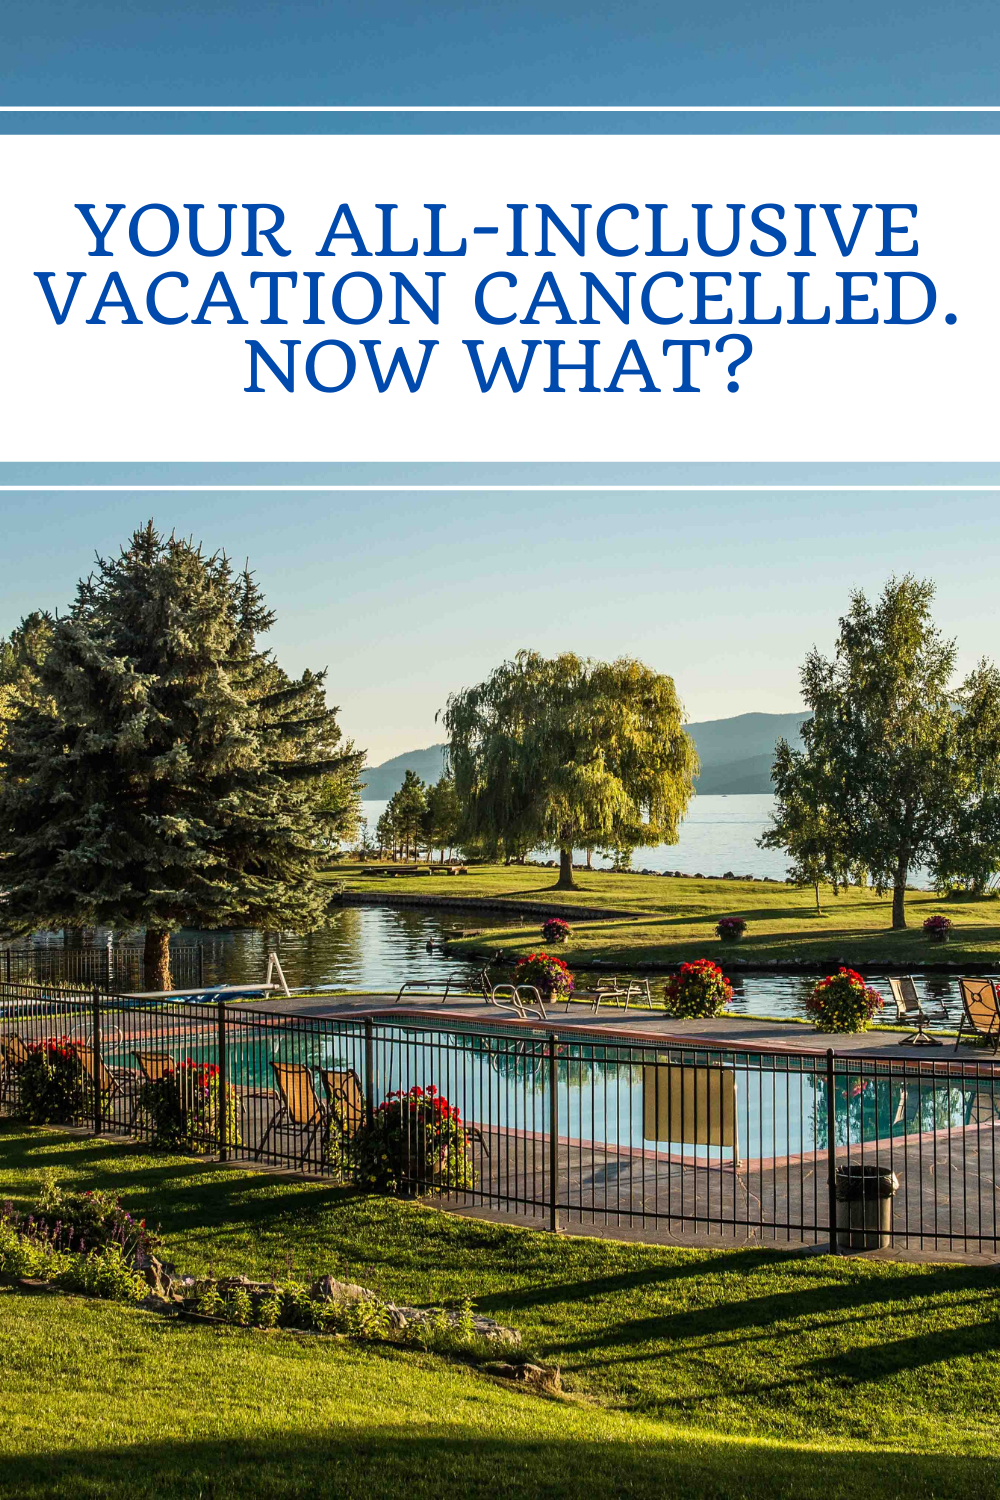 All-Inclusive Vacation